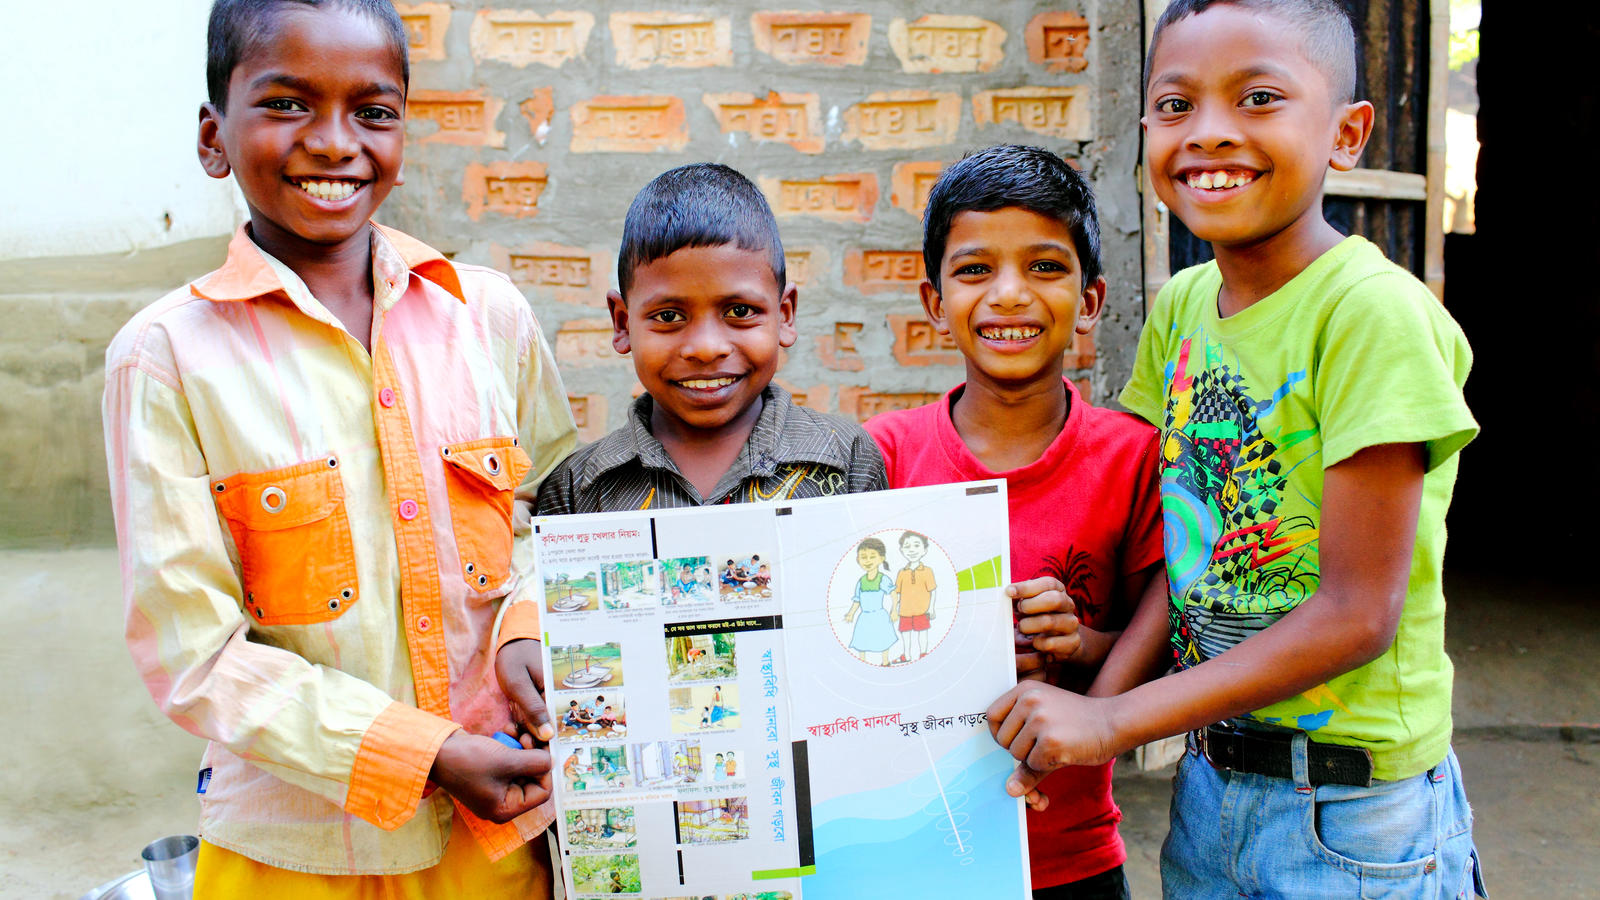 A group of children hold a hygiene education poster in Sylhet, Bangladesh.